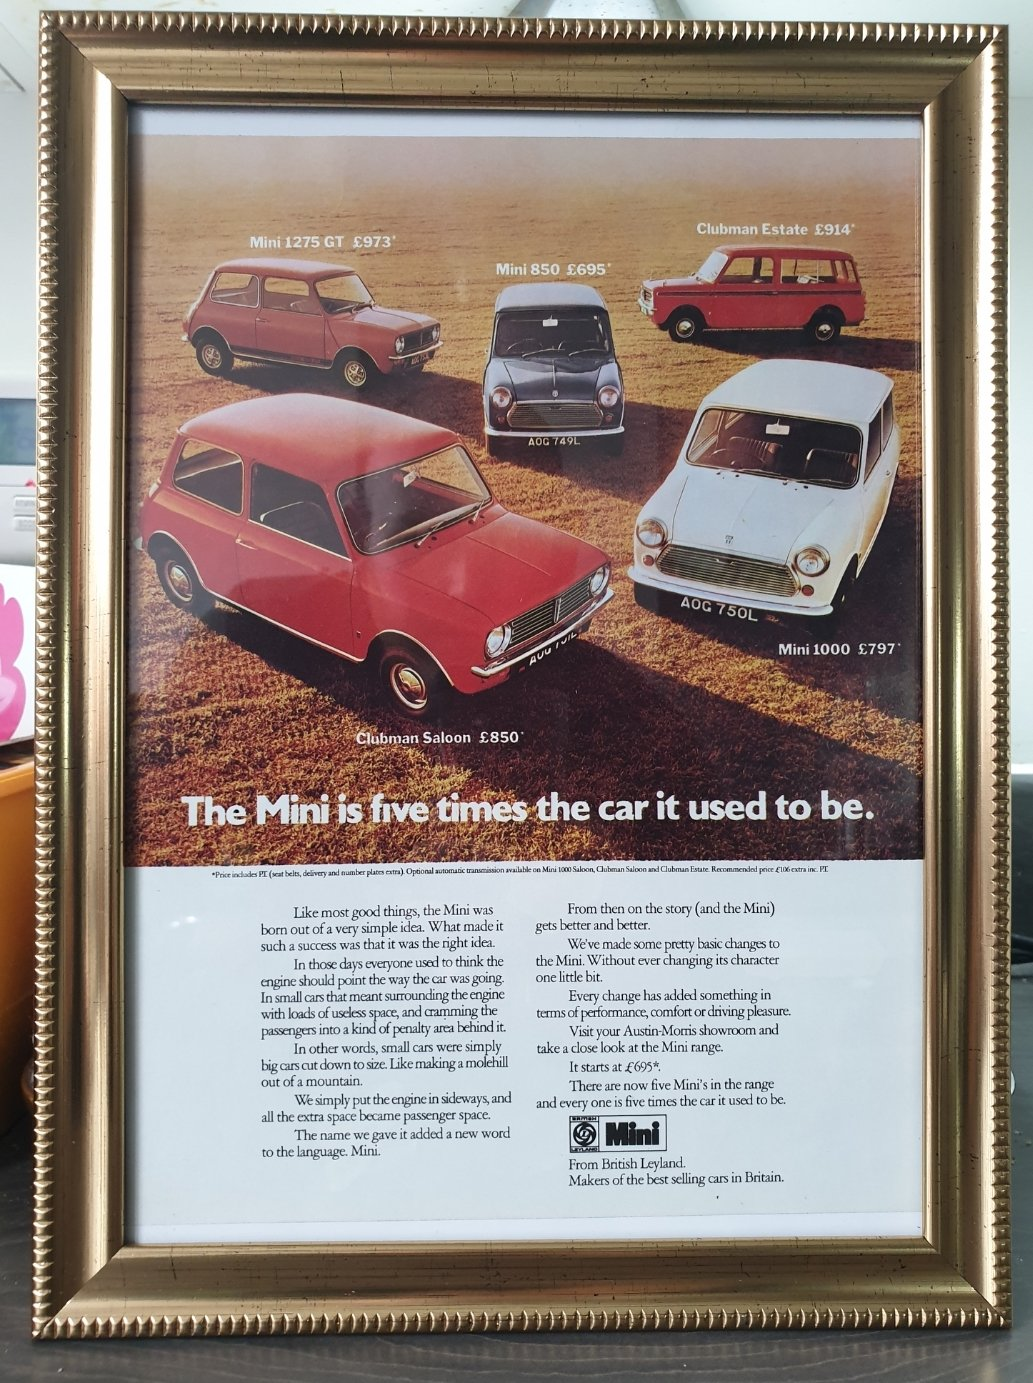 Original 1973 Mini Framed Advert  For Sale (picture 1 of 2)